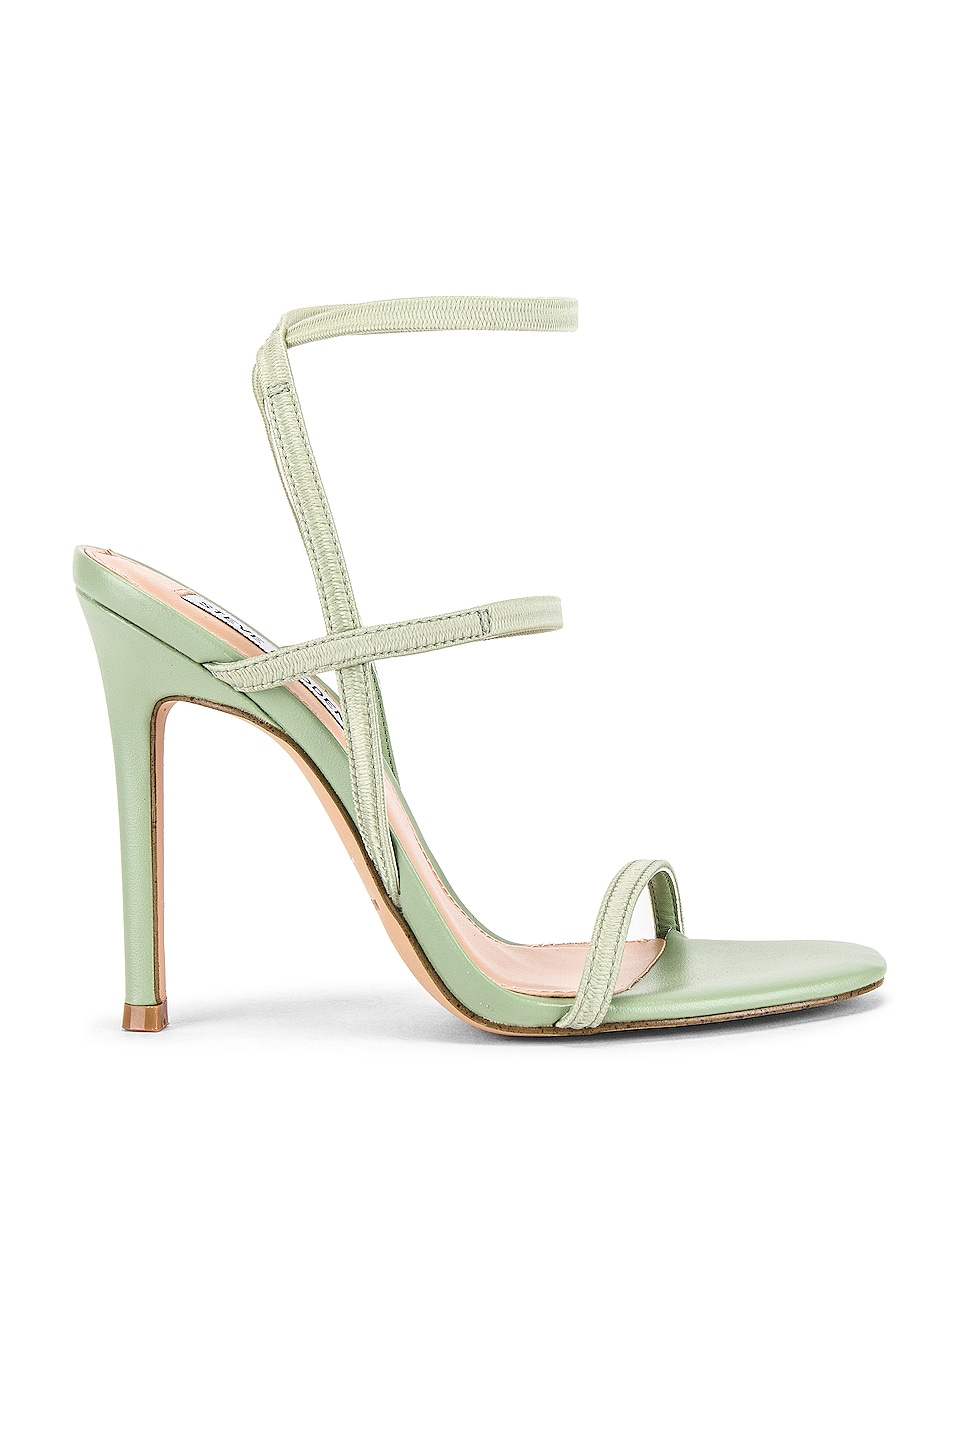 Steve Madden Nectur Stiletto in Mint